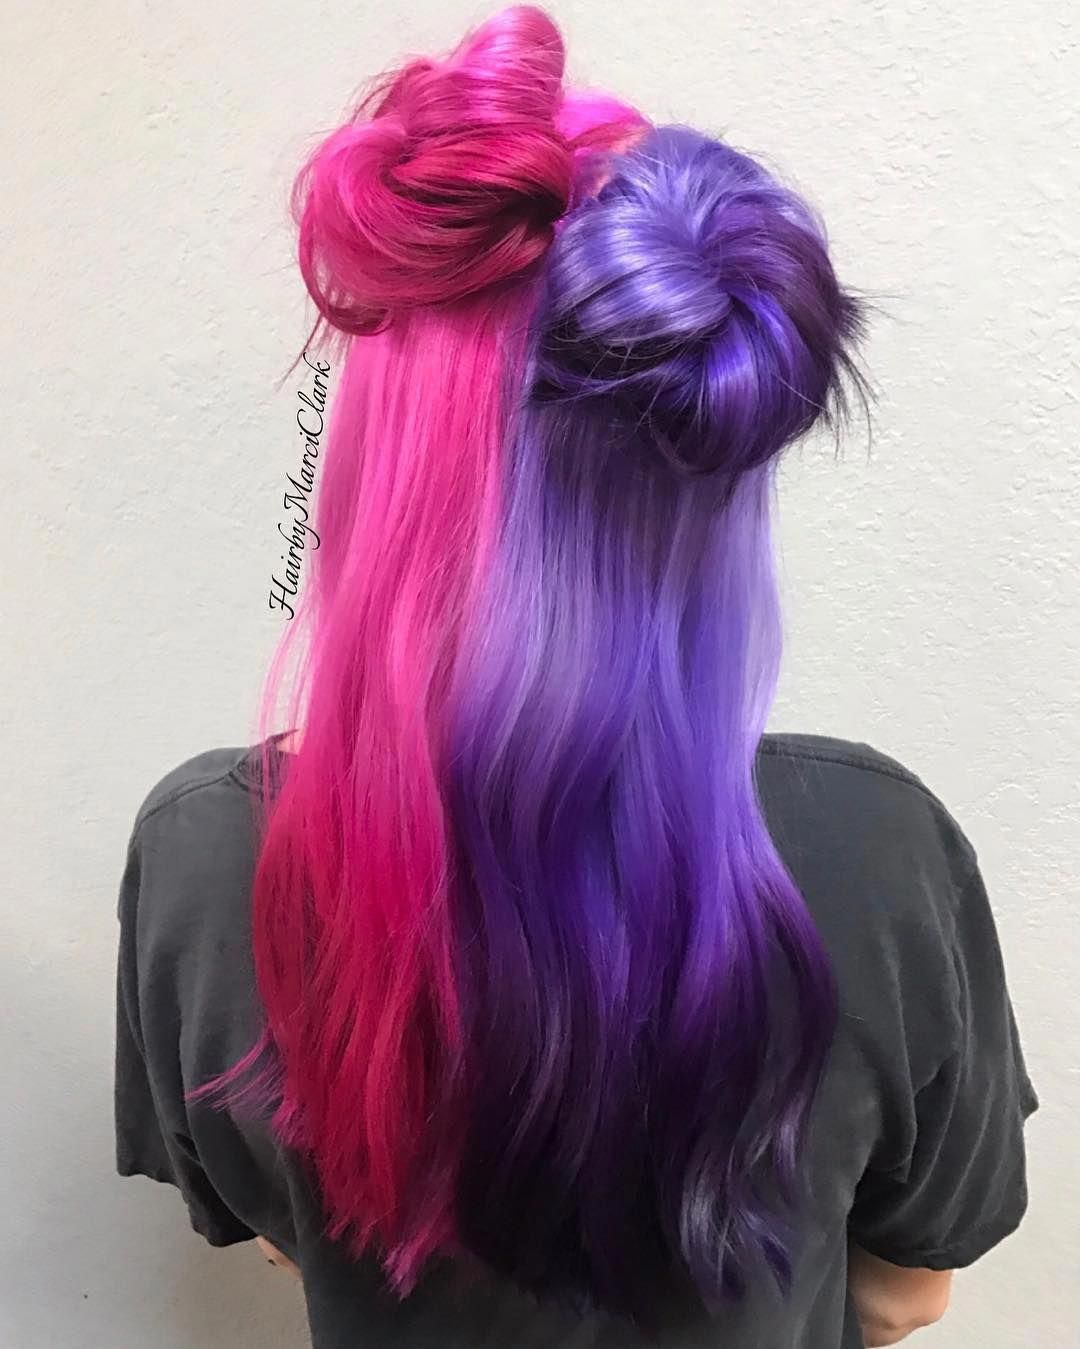 Half And Half Pink And Purple Reverse Ombre Hairbymarciclark Pinkhair Purplehair Reverseombre Hal Half Colored Hair Hair Dye Colors Purple Ombre Hair